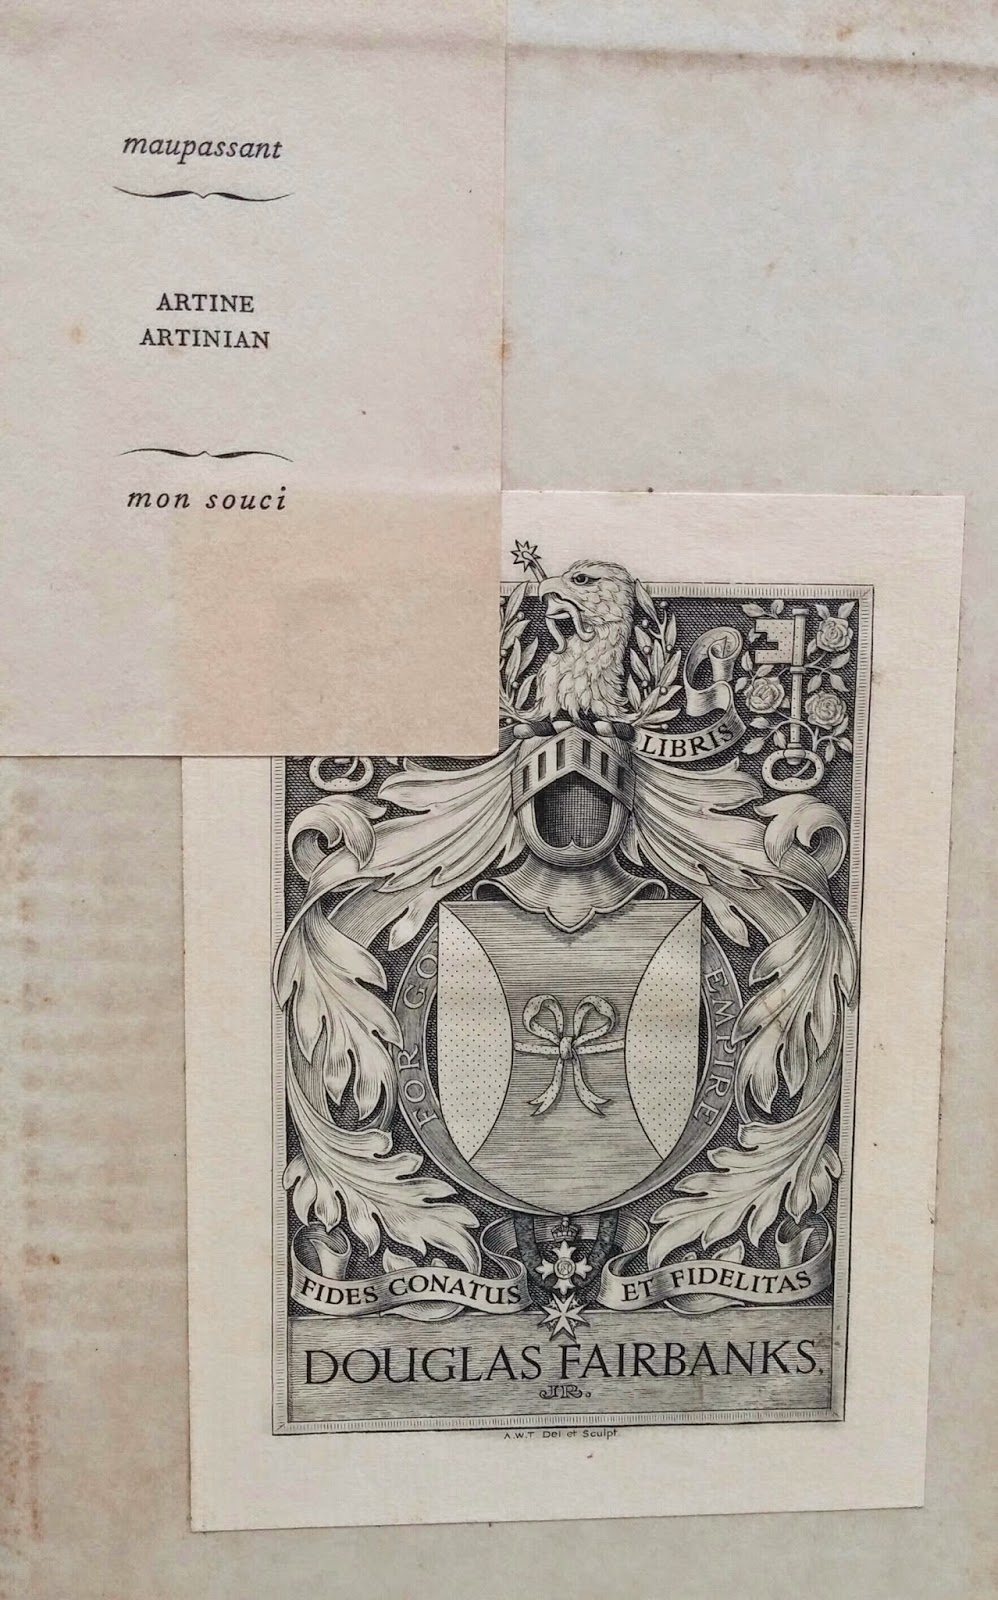 Three Signed Eisenhower Books And My Favorite Bookplate Ever From The  Estate Of Both Artine Artinian & Douglas Fairbanks